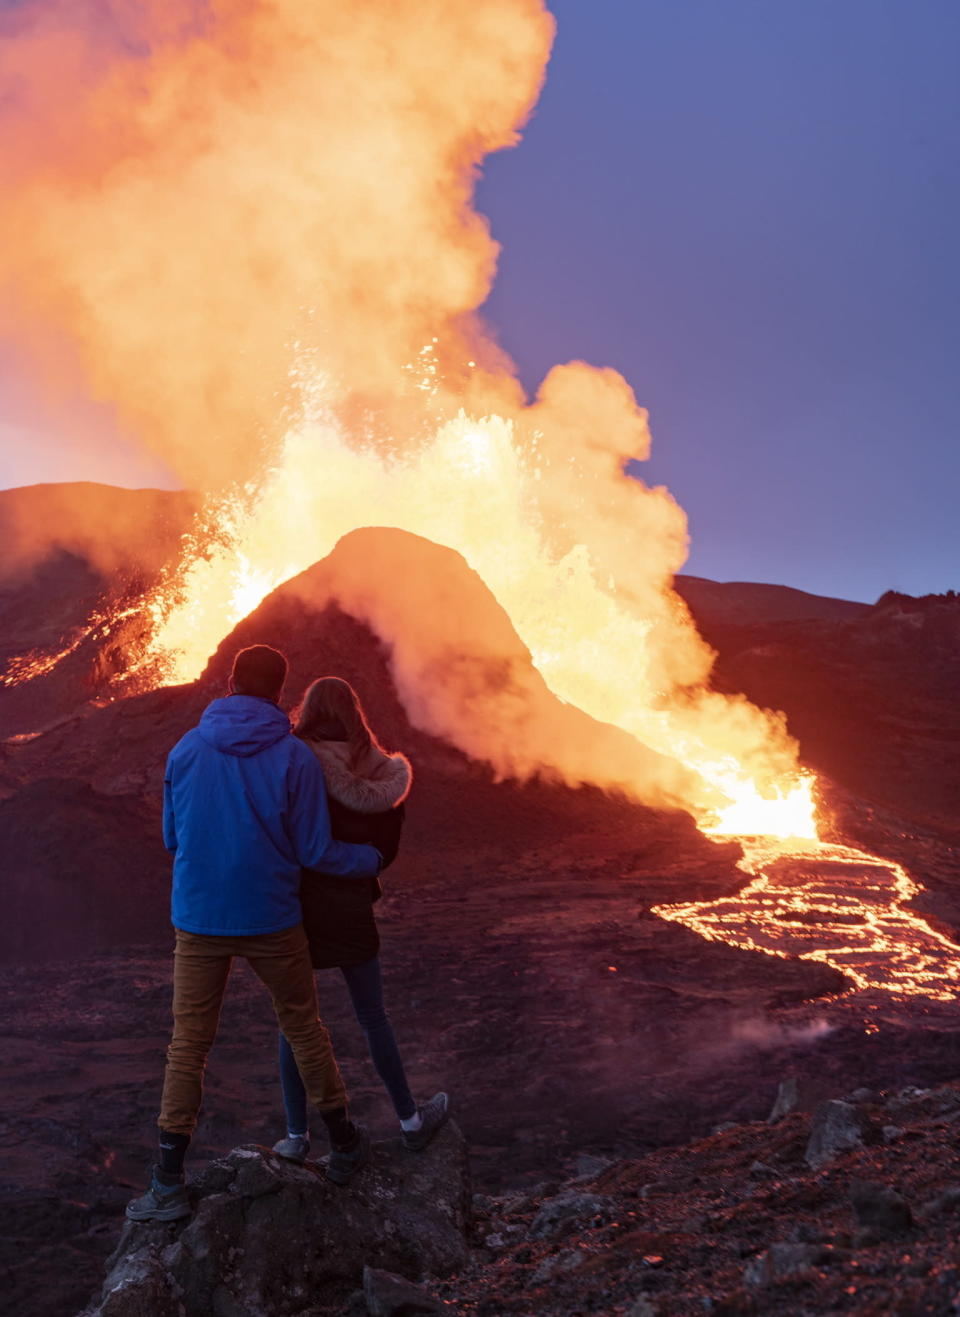 People watch as lava flows from an eruption of the Fagradalsfjall volcano on the Reykjanes Peninsula in southwestern Iceland on Thursday, May 13, 2021. (AP Photo/Miguel Morenatti)